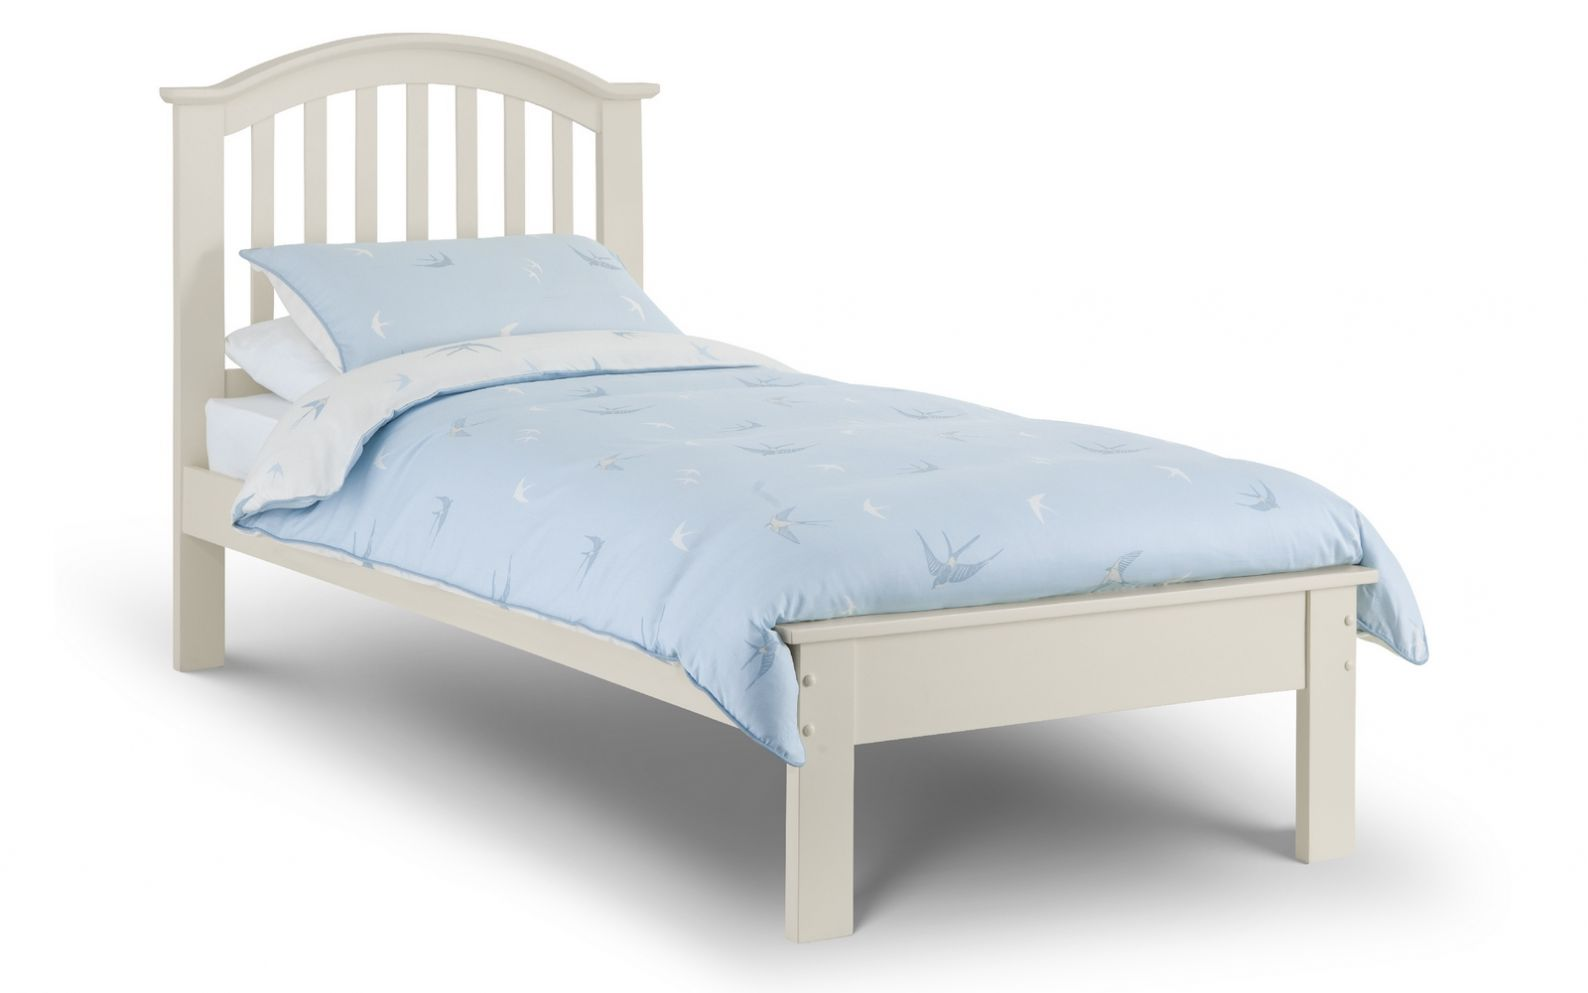 aspire superior day delivery select single ss bed divan beds p next a htm comfort